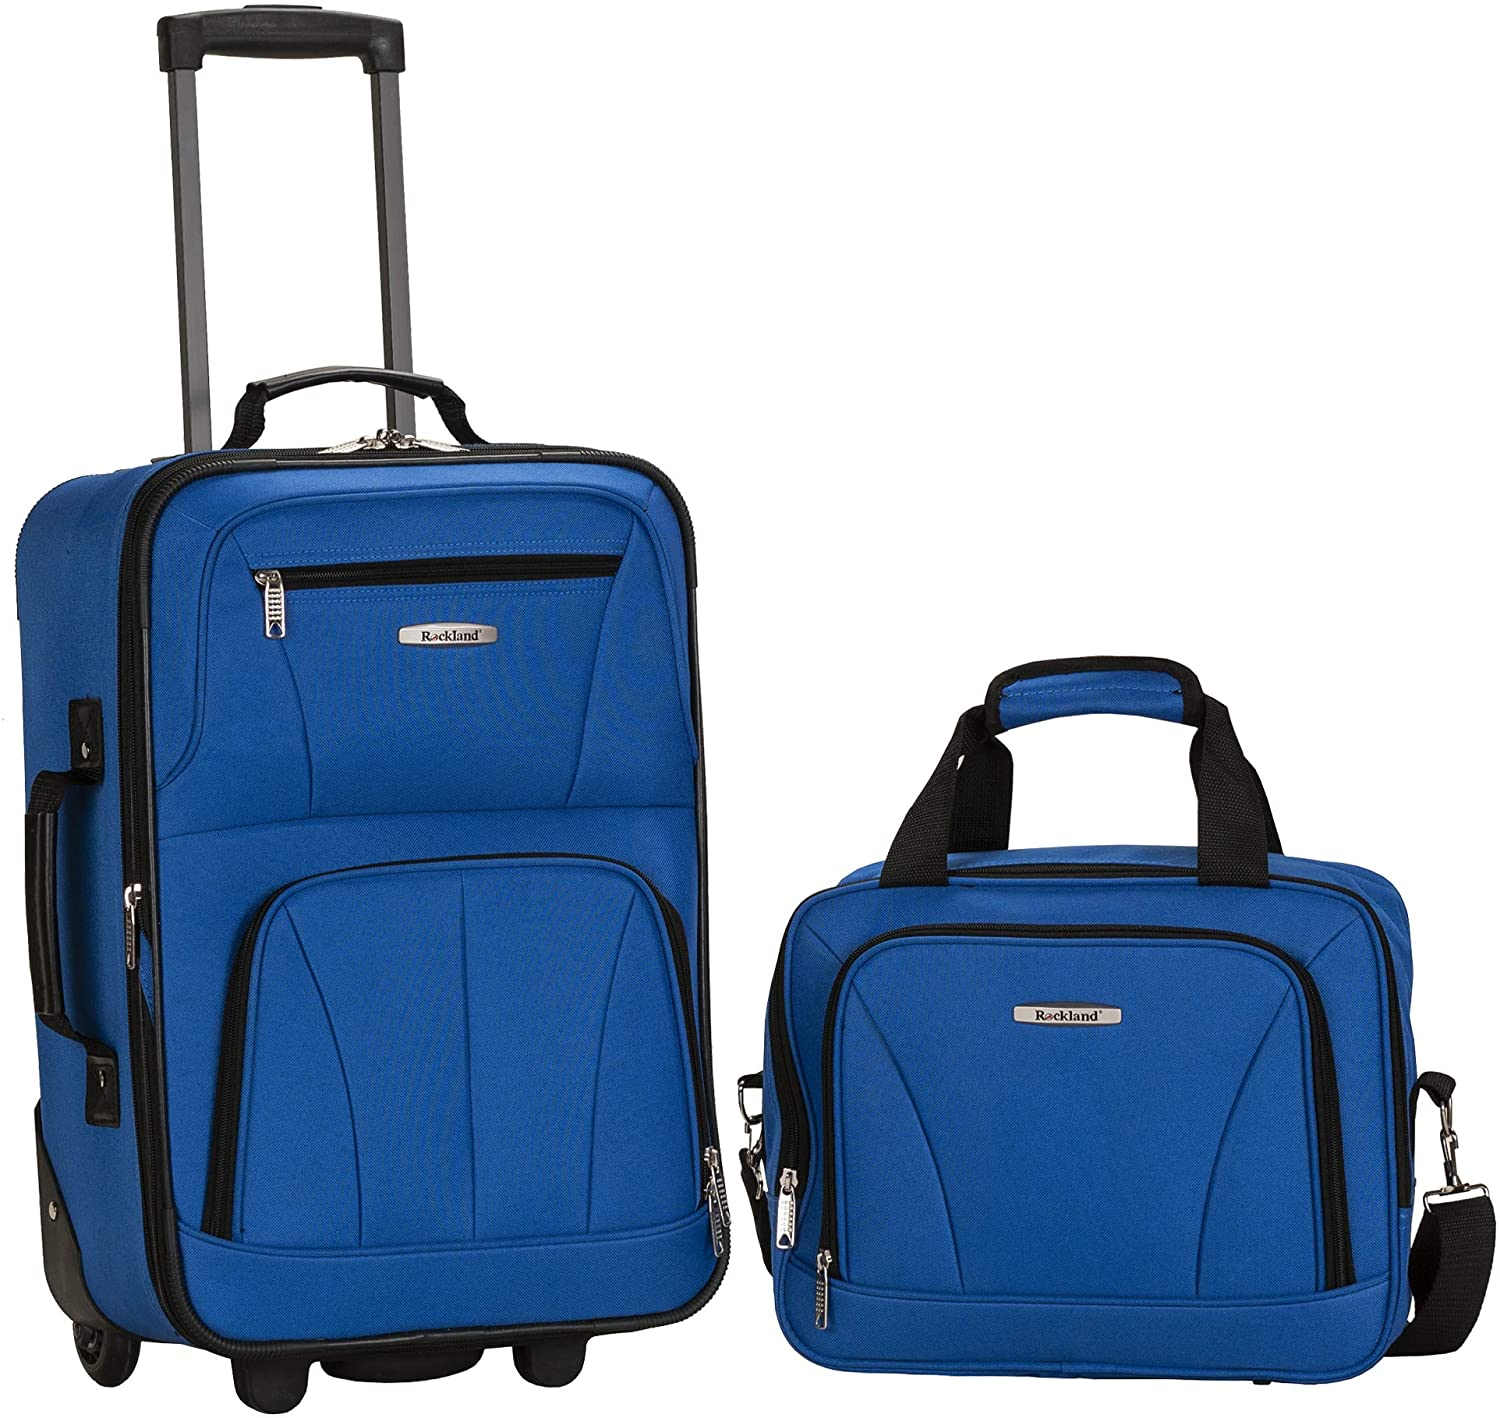 Rockland Softside Upright Traveler Suitcase, 2-Piece